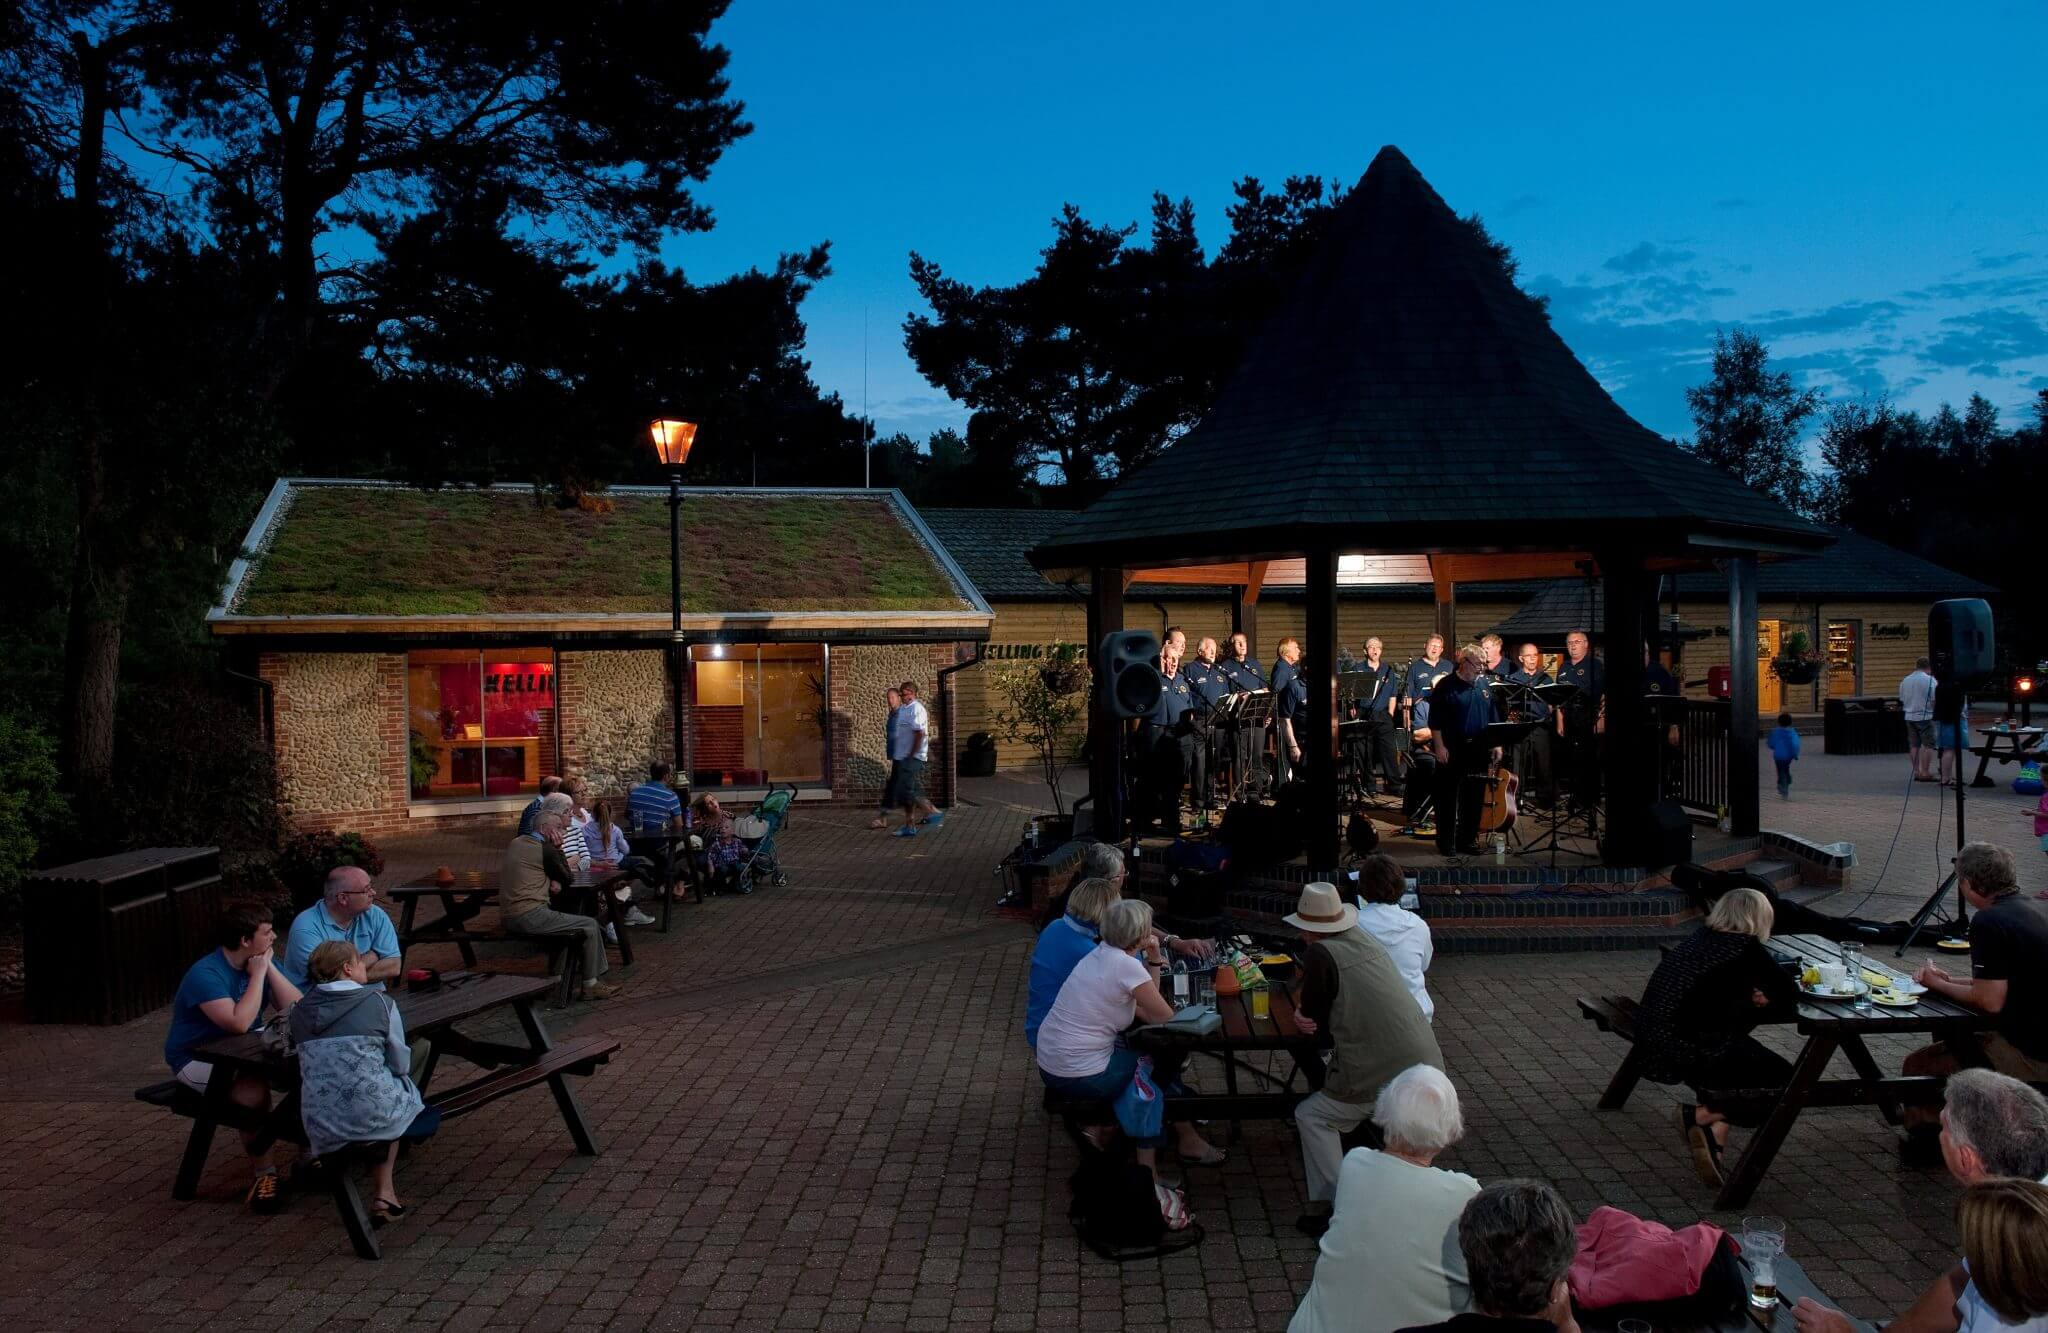 Entertainment at Kelling Heath is a great alternative to Center Parcs - albeit a lot lower key